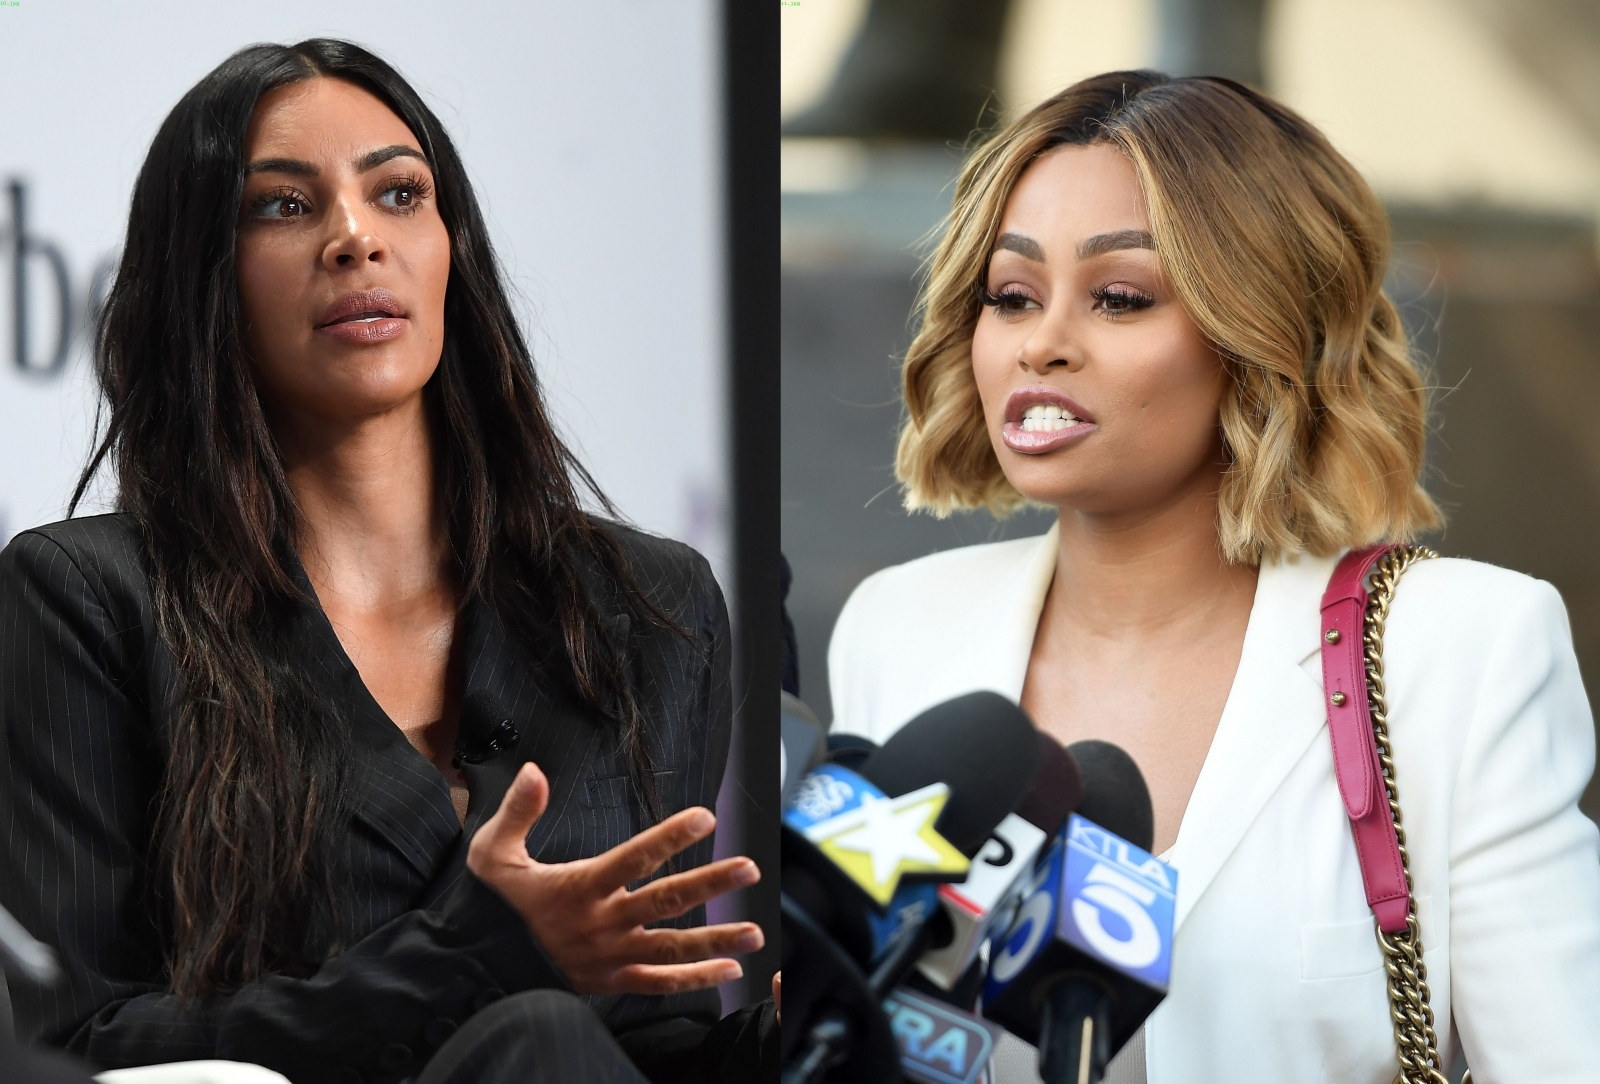 Blac Chyna Believes The Kardashians Are Trying to Destroy Her Career